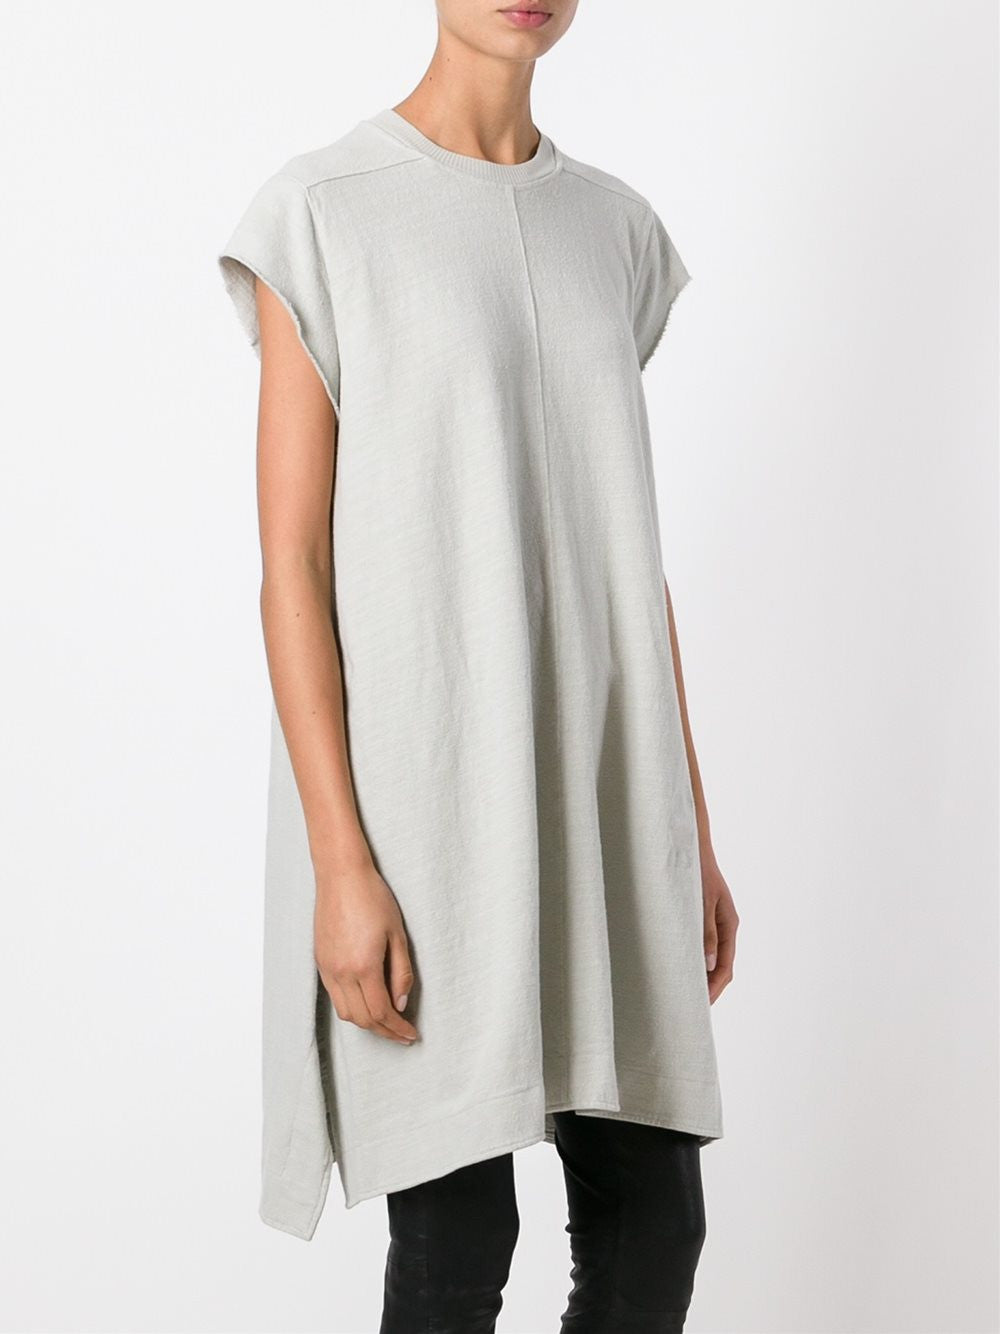 T-Shirt Dress | DS16F8505-BG